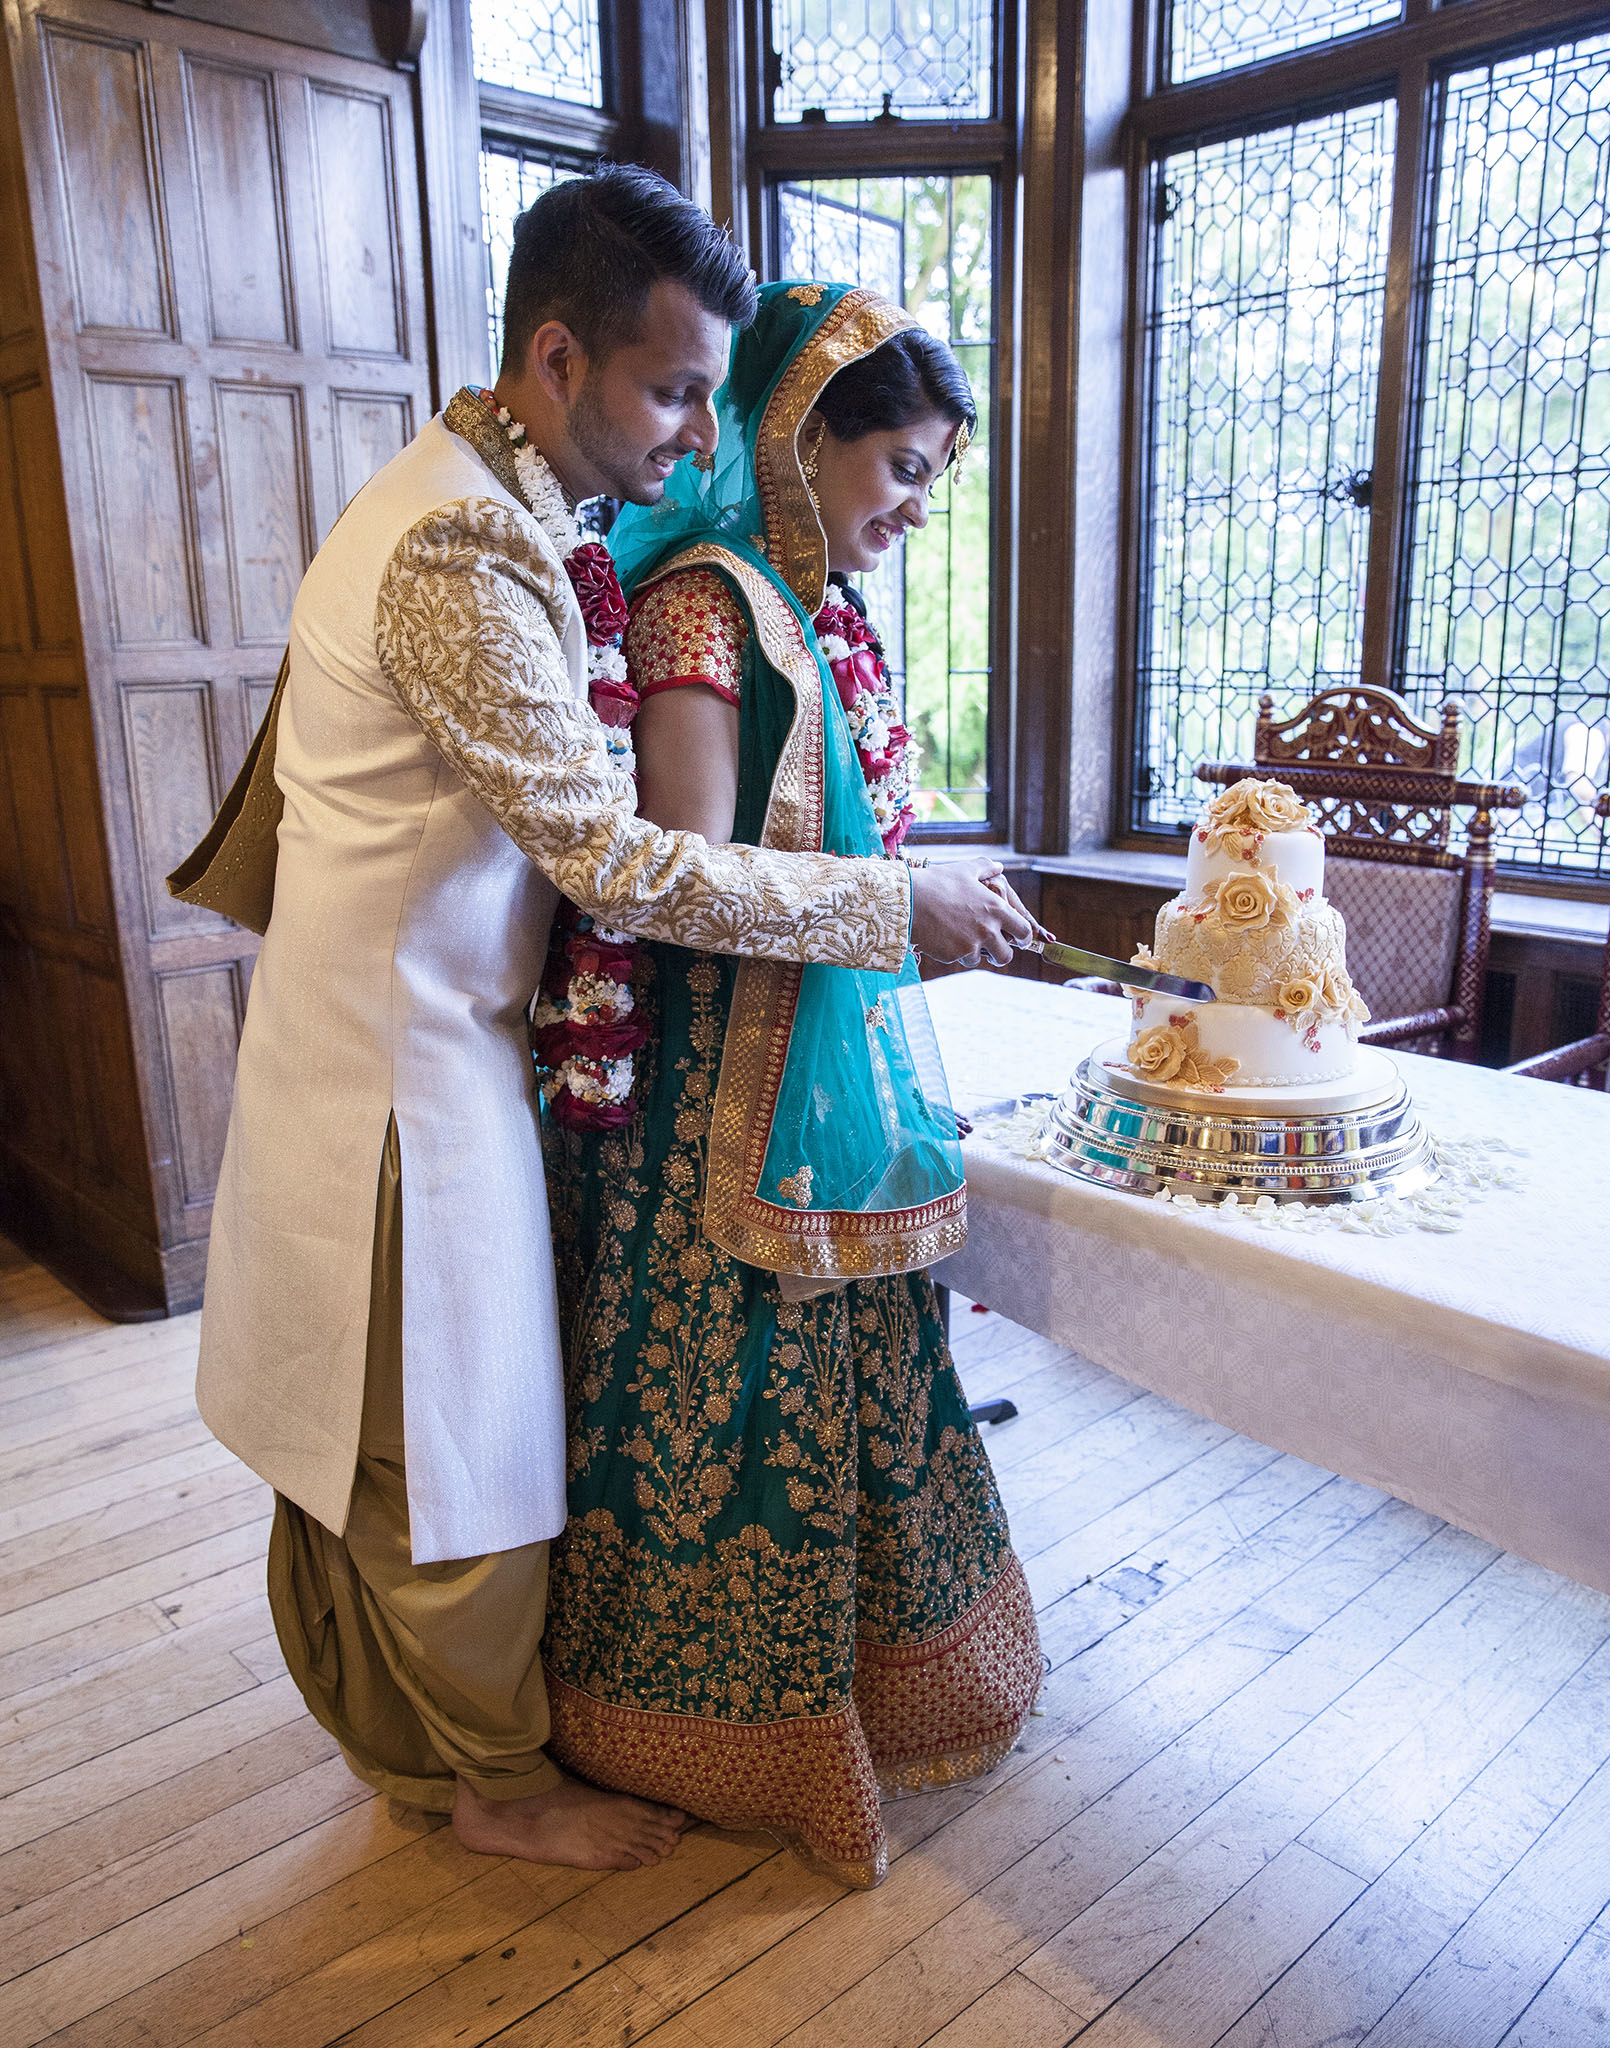 elizabethgphotography_kingslangley_hertfordshire_fineart_indian_wedding_photography_jigna_bhuja_bhaktivedanta_manor_watford_37.jpg